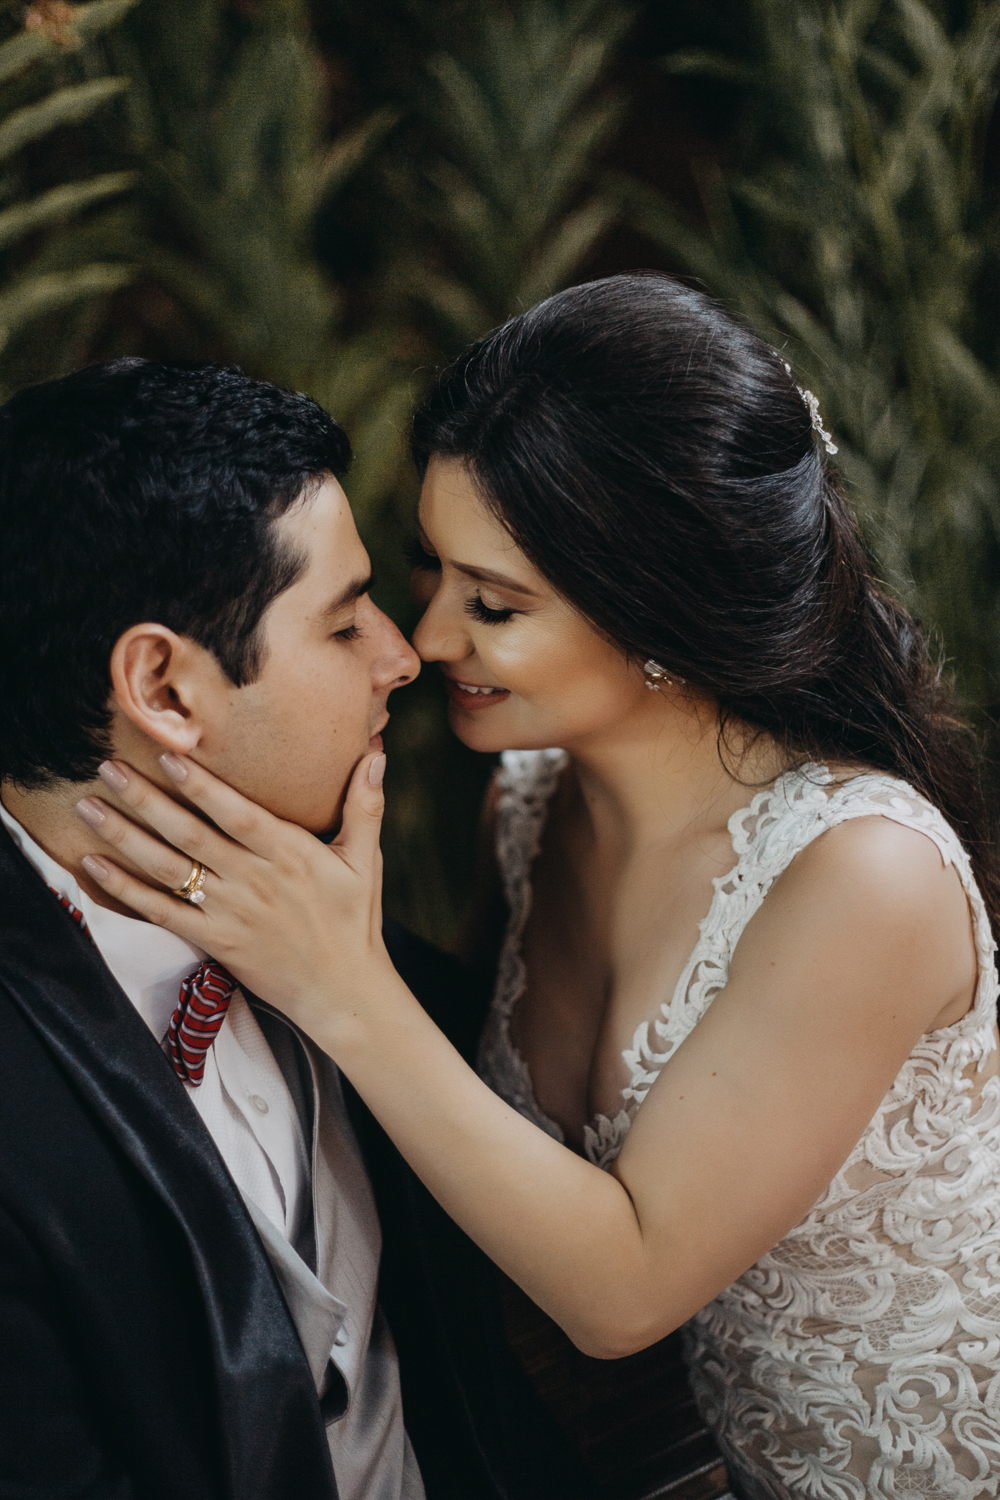 Michelle-Agurto-Fotografia-Bodas-Ecuador-Destination-Wedding-Photographer-Alysson-Tito-87.JPG